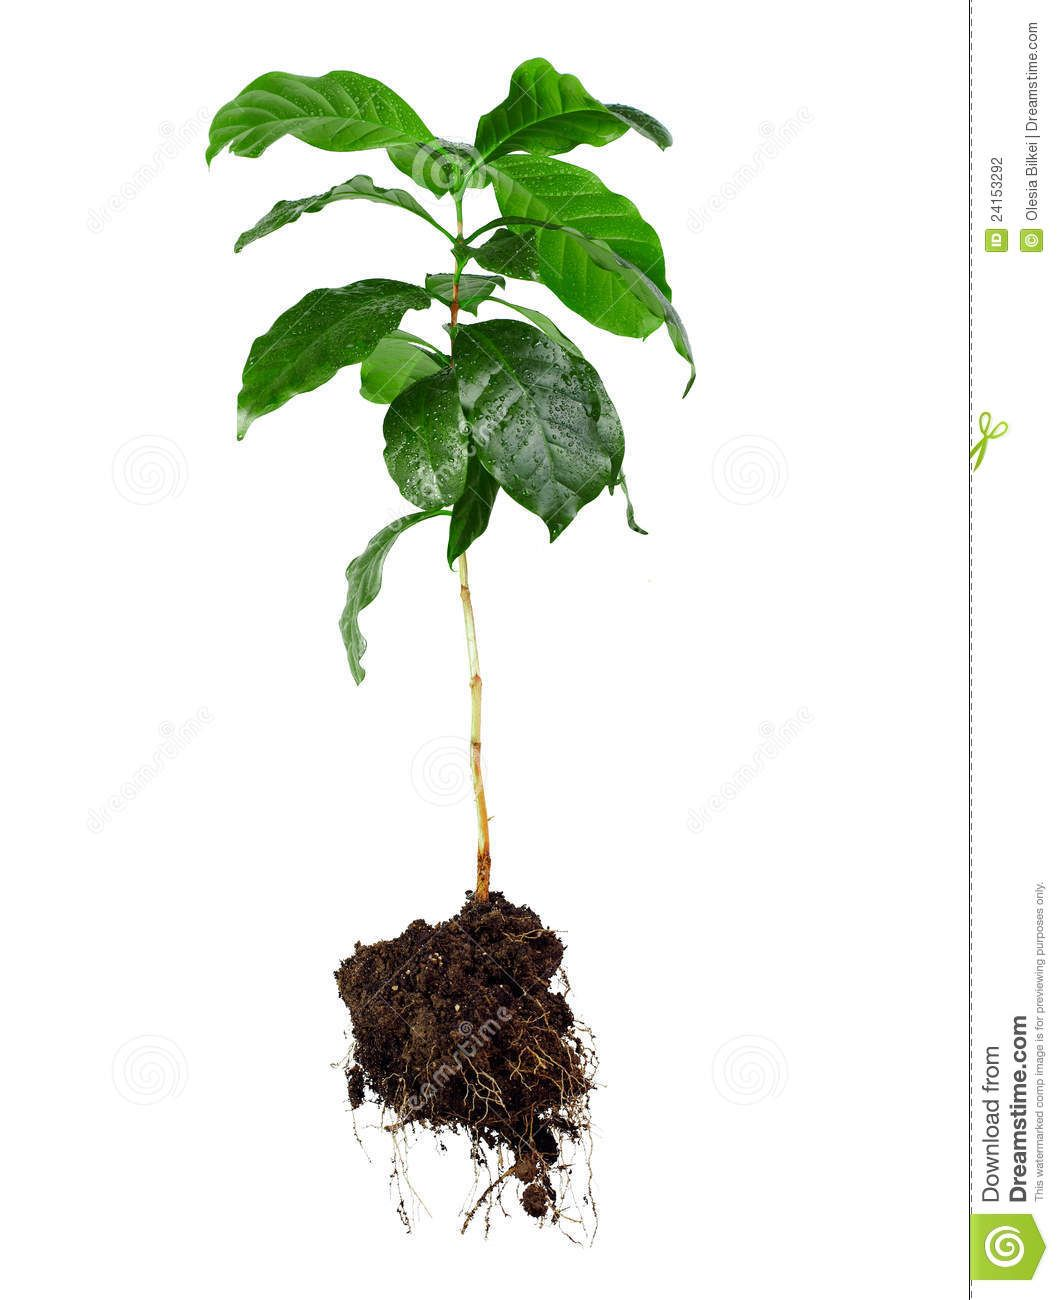 clip art library download Basil drawing tree. With roots plant plants